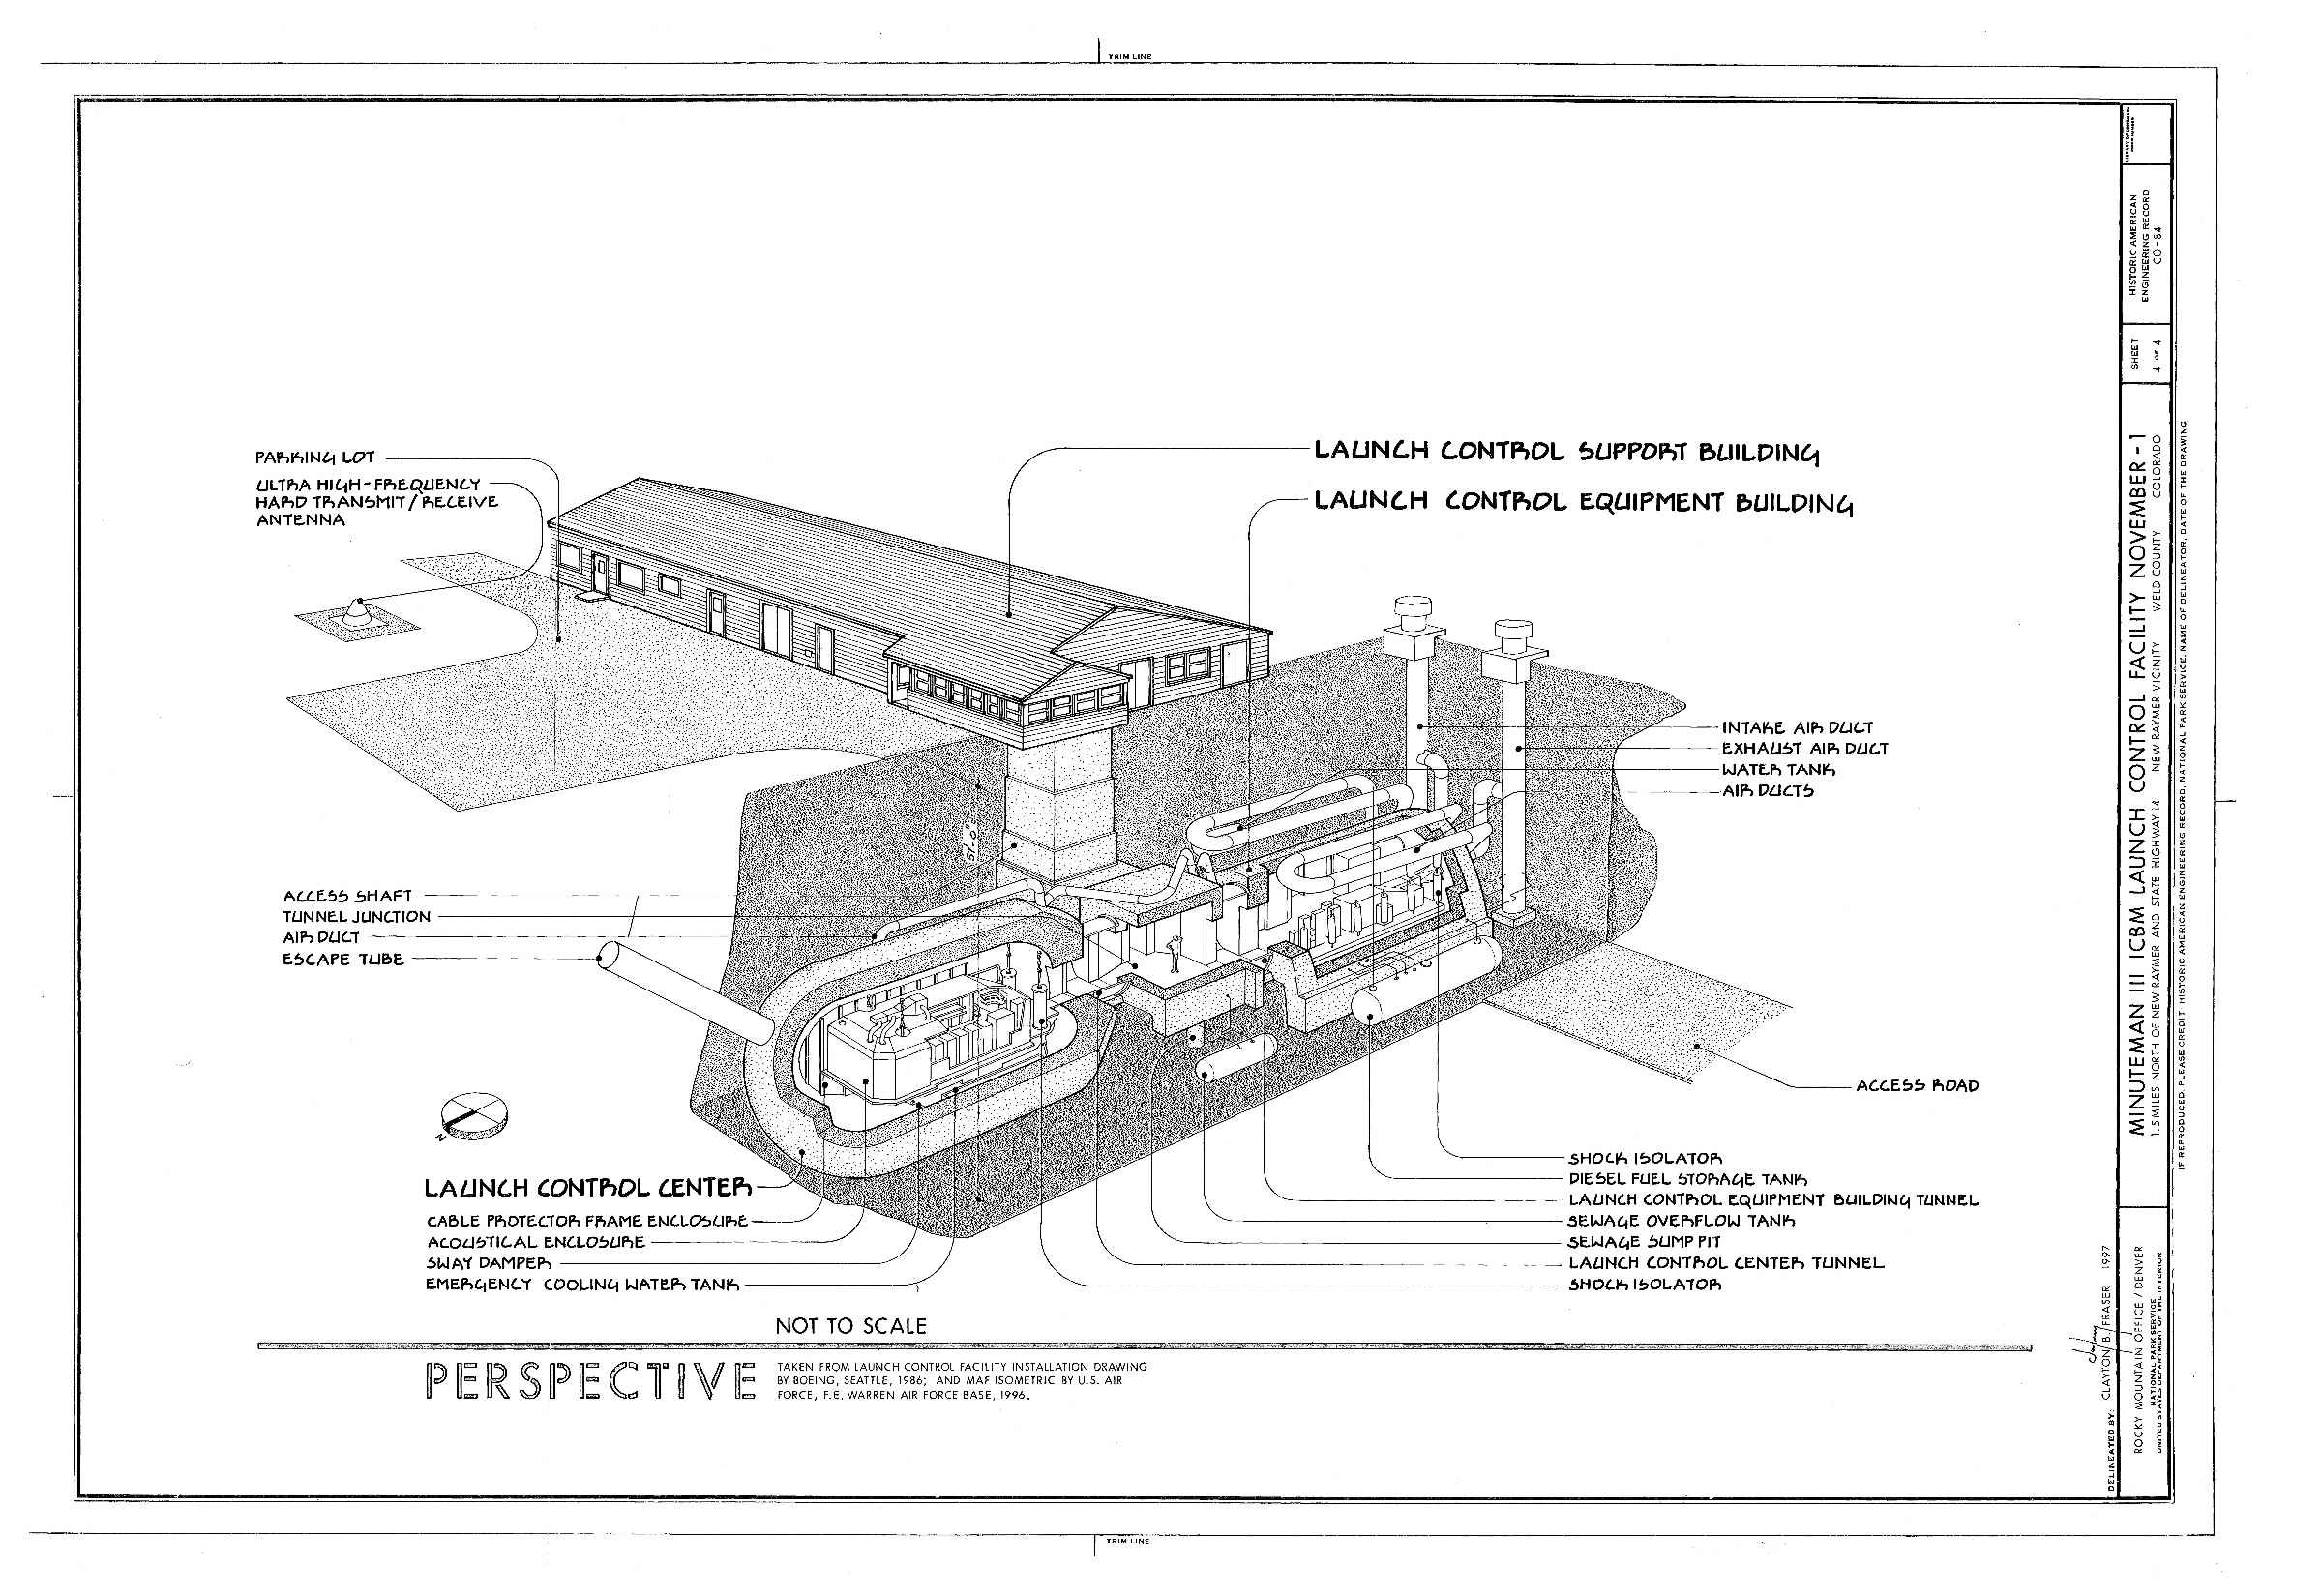 Launch facility site plan